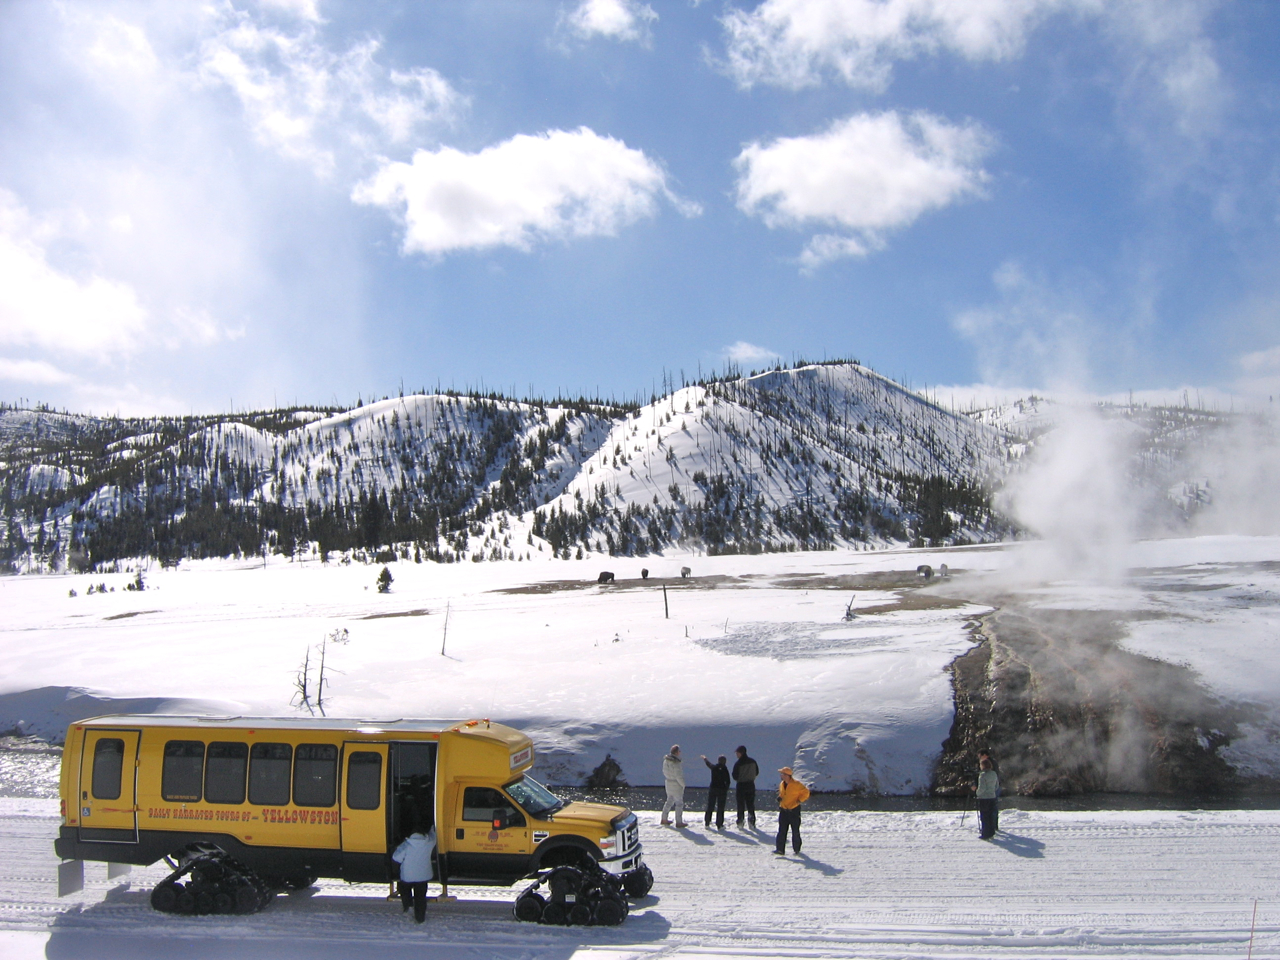 Tour in Yellowstone National Park